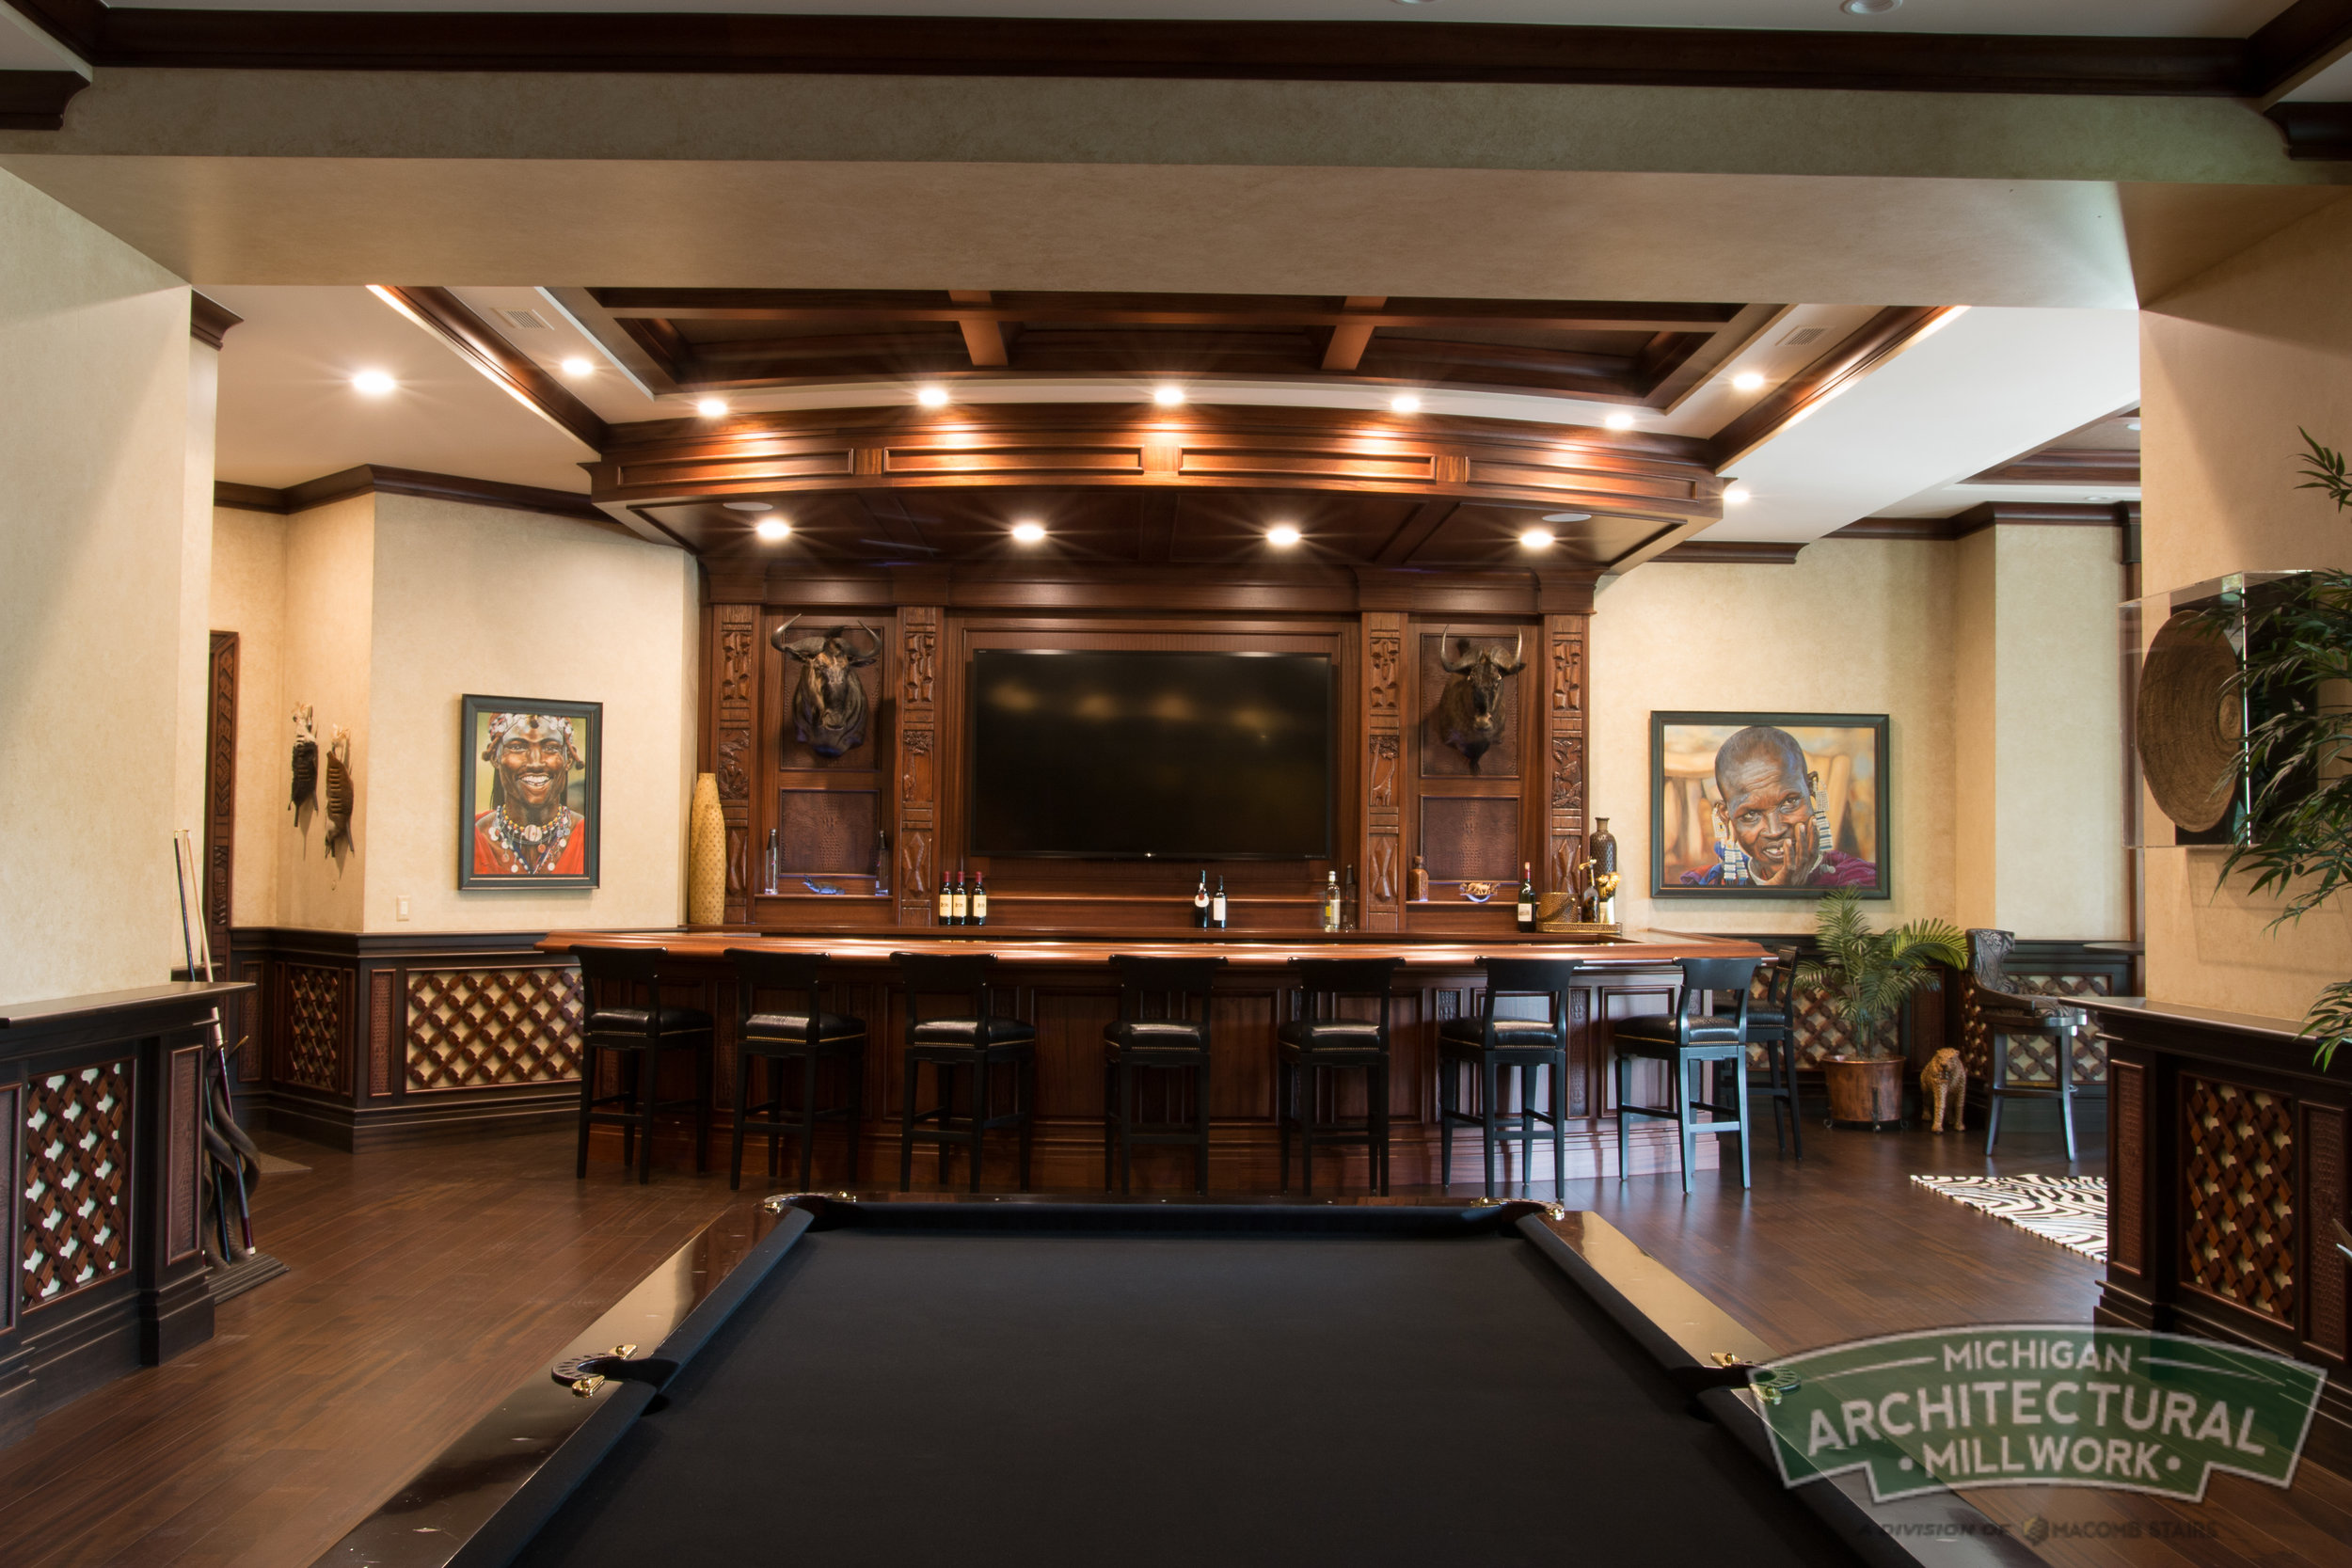 Michigan Architectural Millwork- Moulding and Millwork Photo-67.jpg